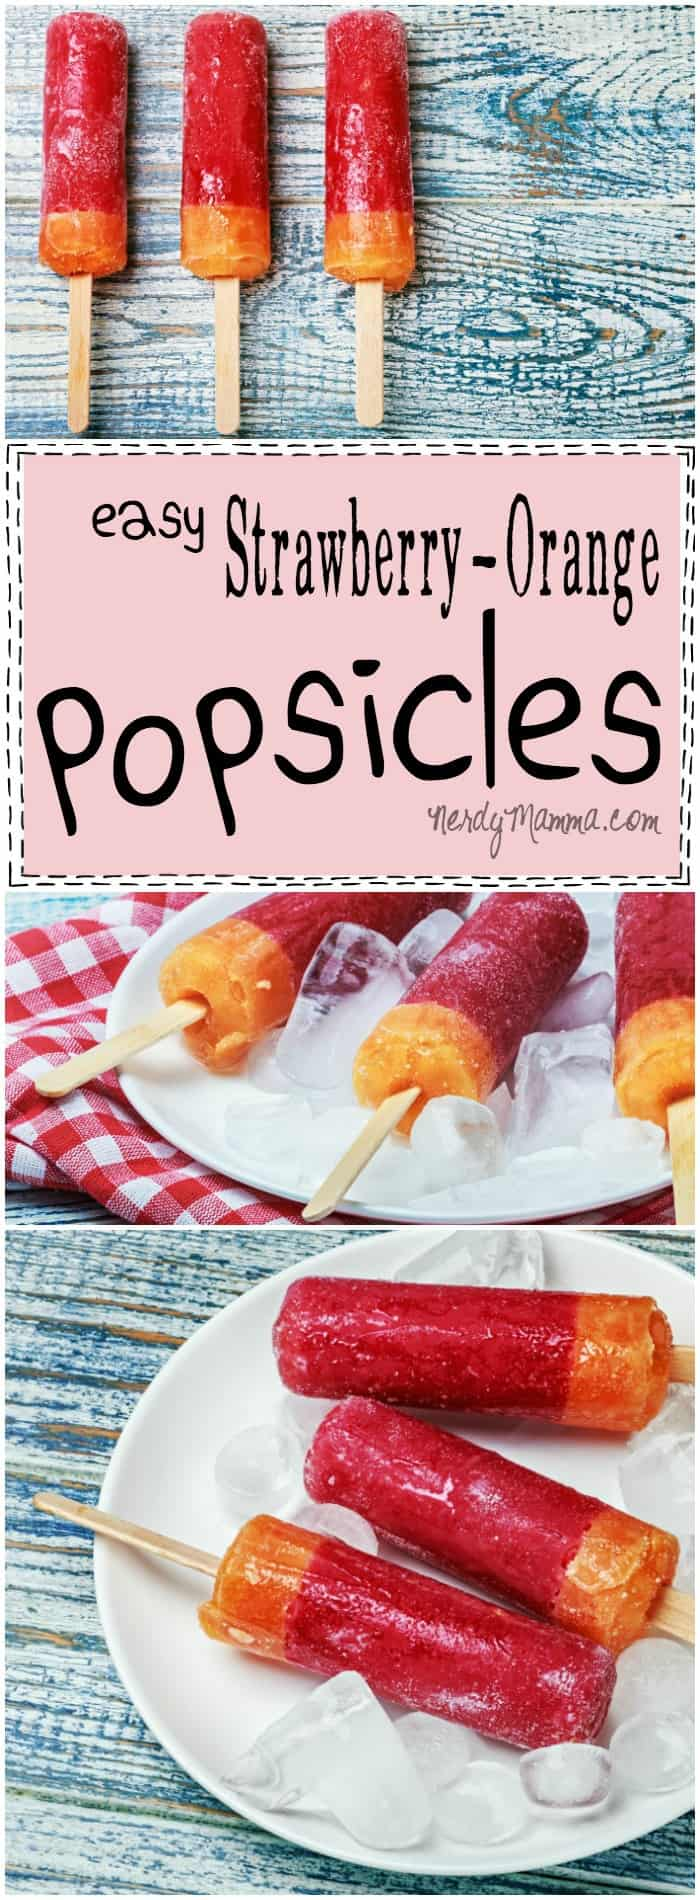 This recipe for Easy Strawberry & Orange Popsicles Ah-Mazing. I can't wait to make these for the kids...so healthy and fun!